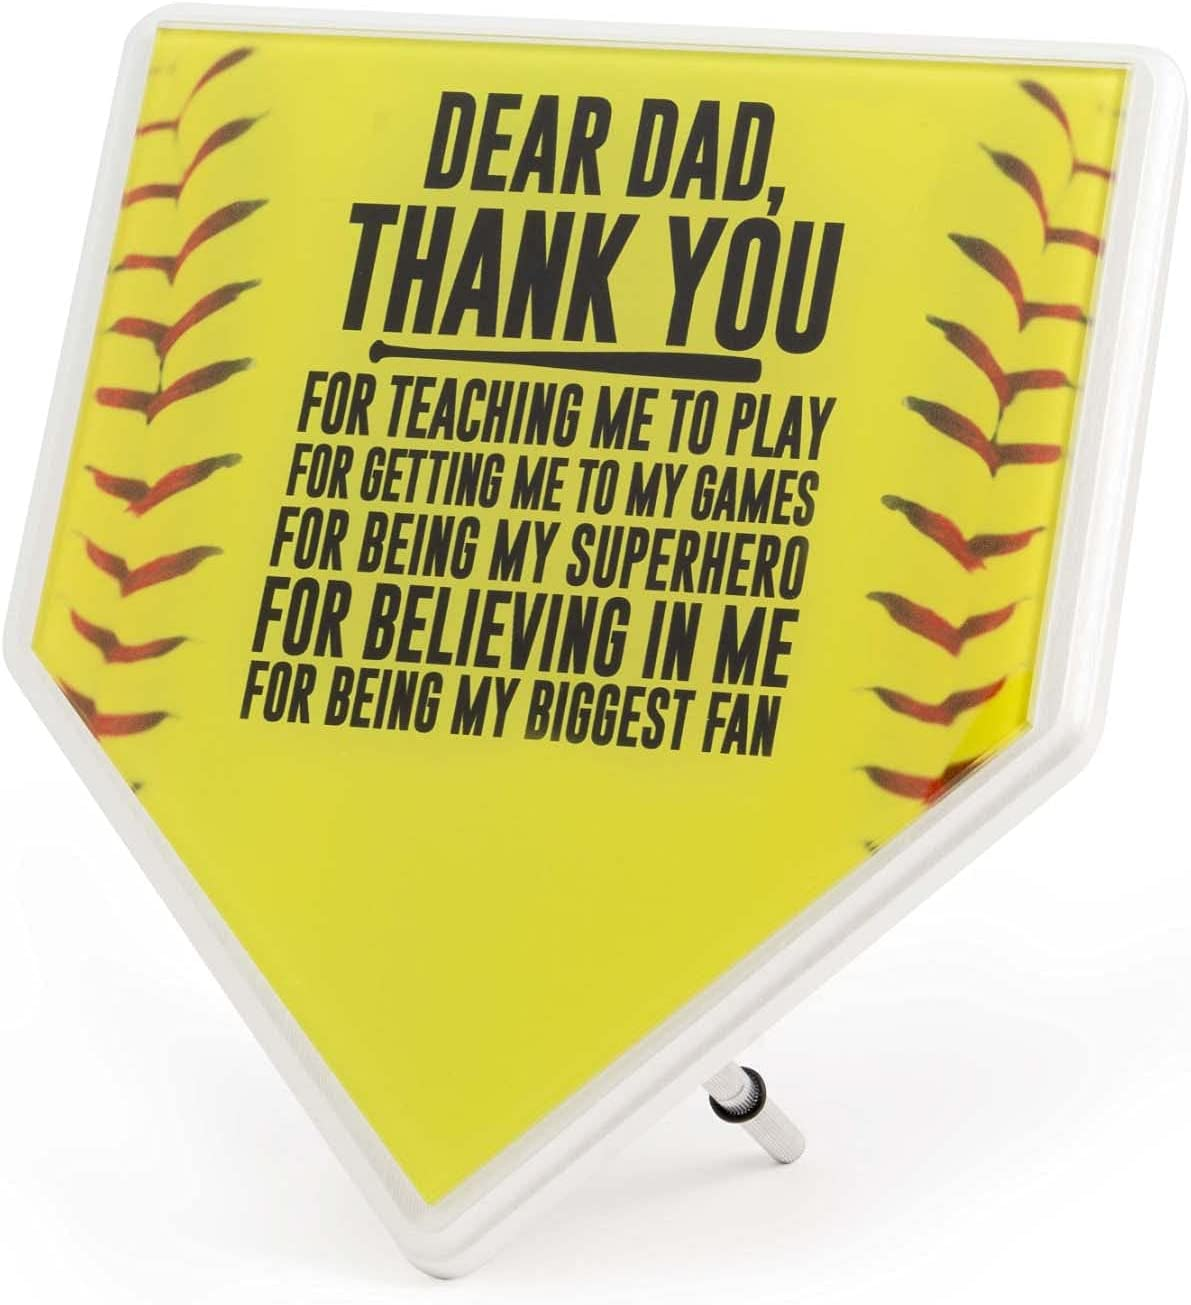 ChalkTalkSPORTS Softball Stitches Home Plate Plaque | Your Message to Dad | Ready to Autograph